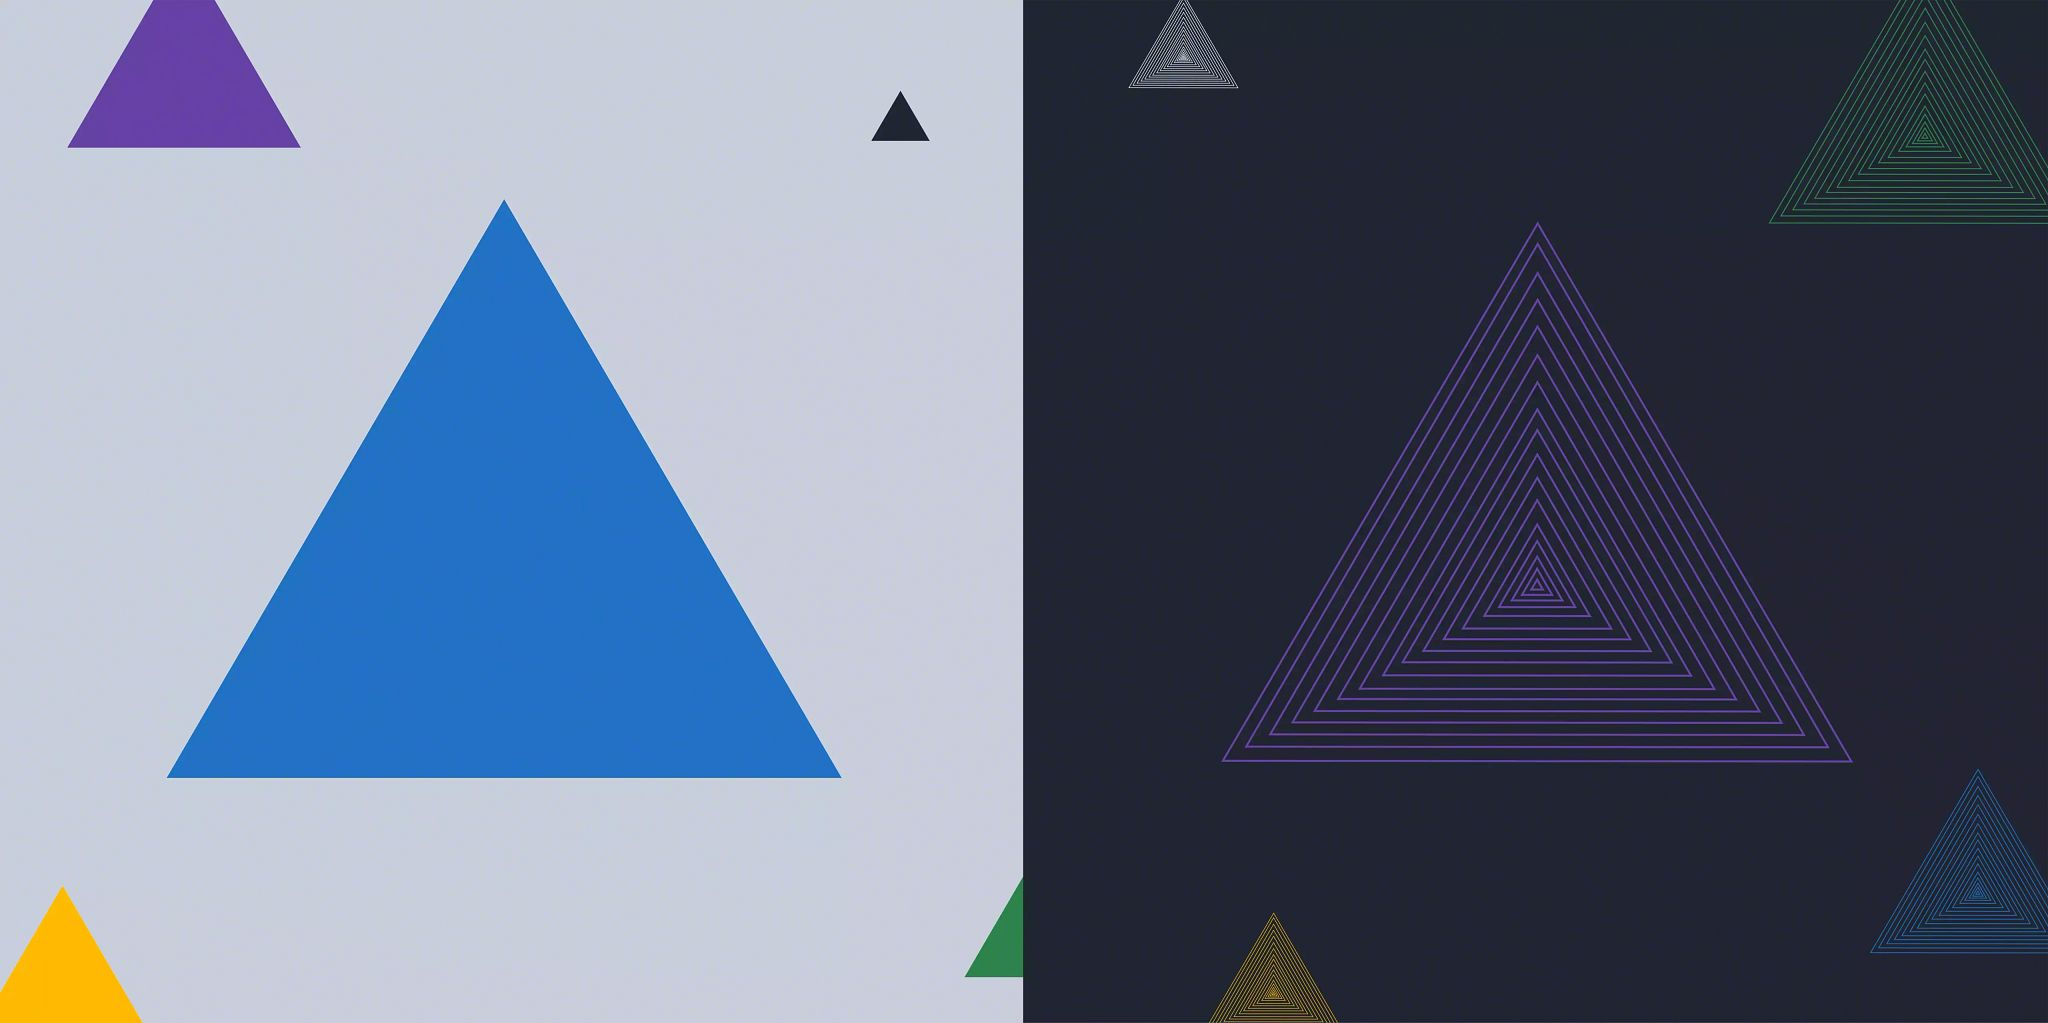 Article header image: Illustration divided into two halves with one main triangle in each half and then smaller triangles floating in the background of each half. The half on the left uses a white background while the one on the right is a black background.